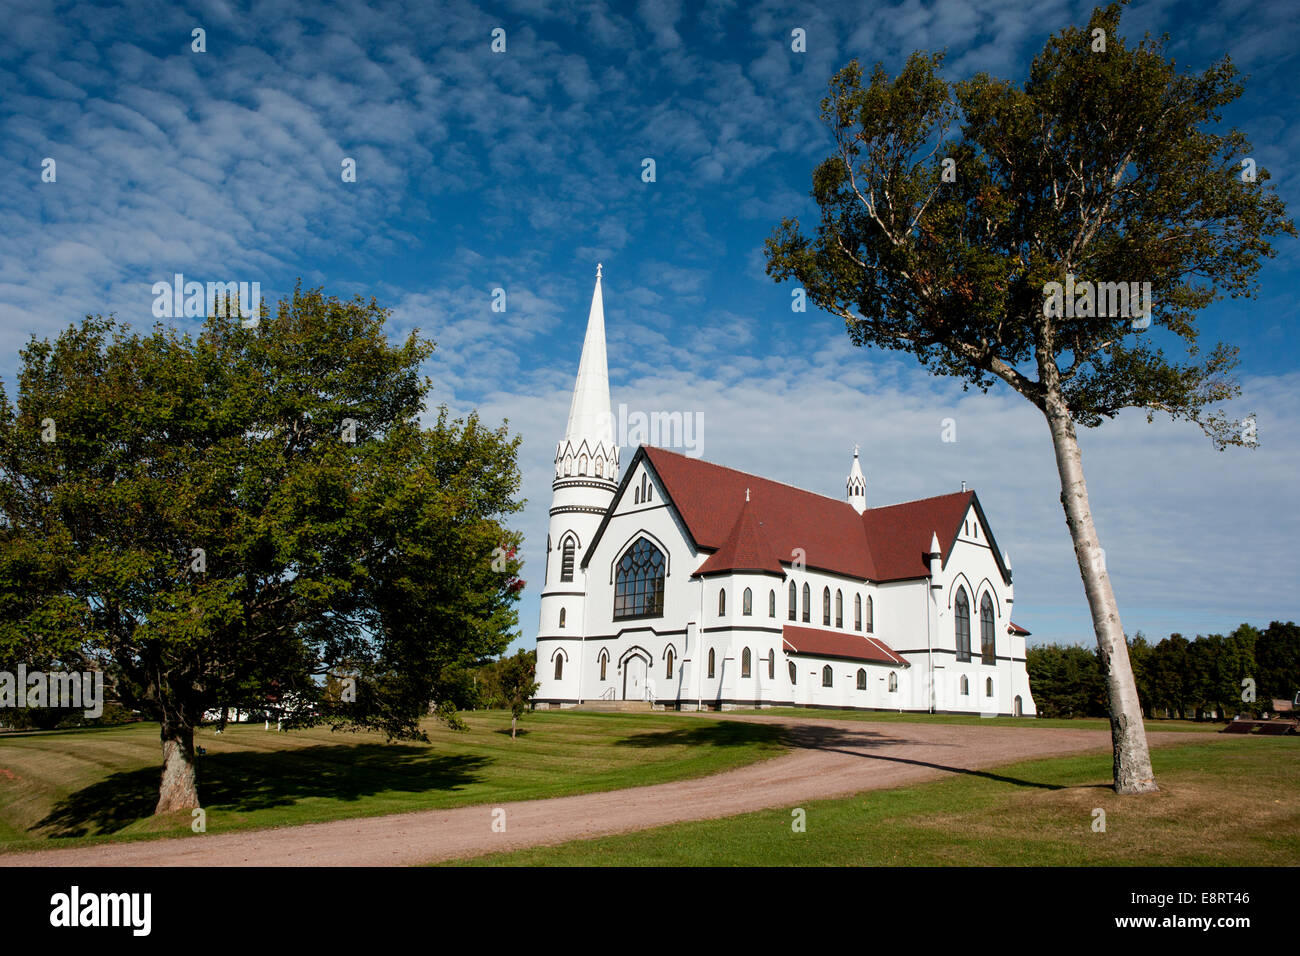 St. Mary's Church - Indian River - Prince Edward Island, Canada - Stock Image